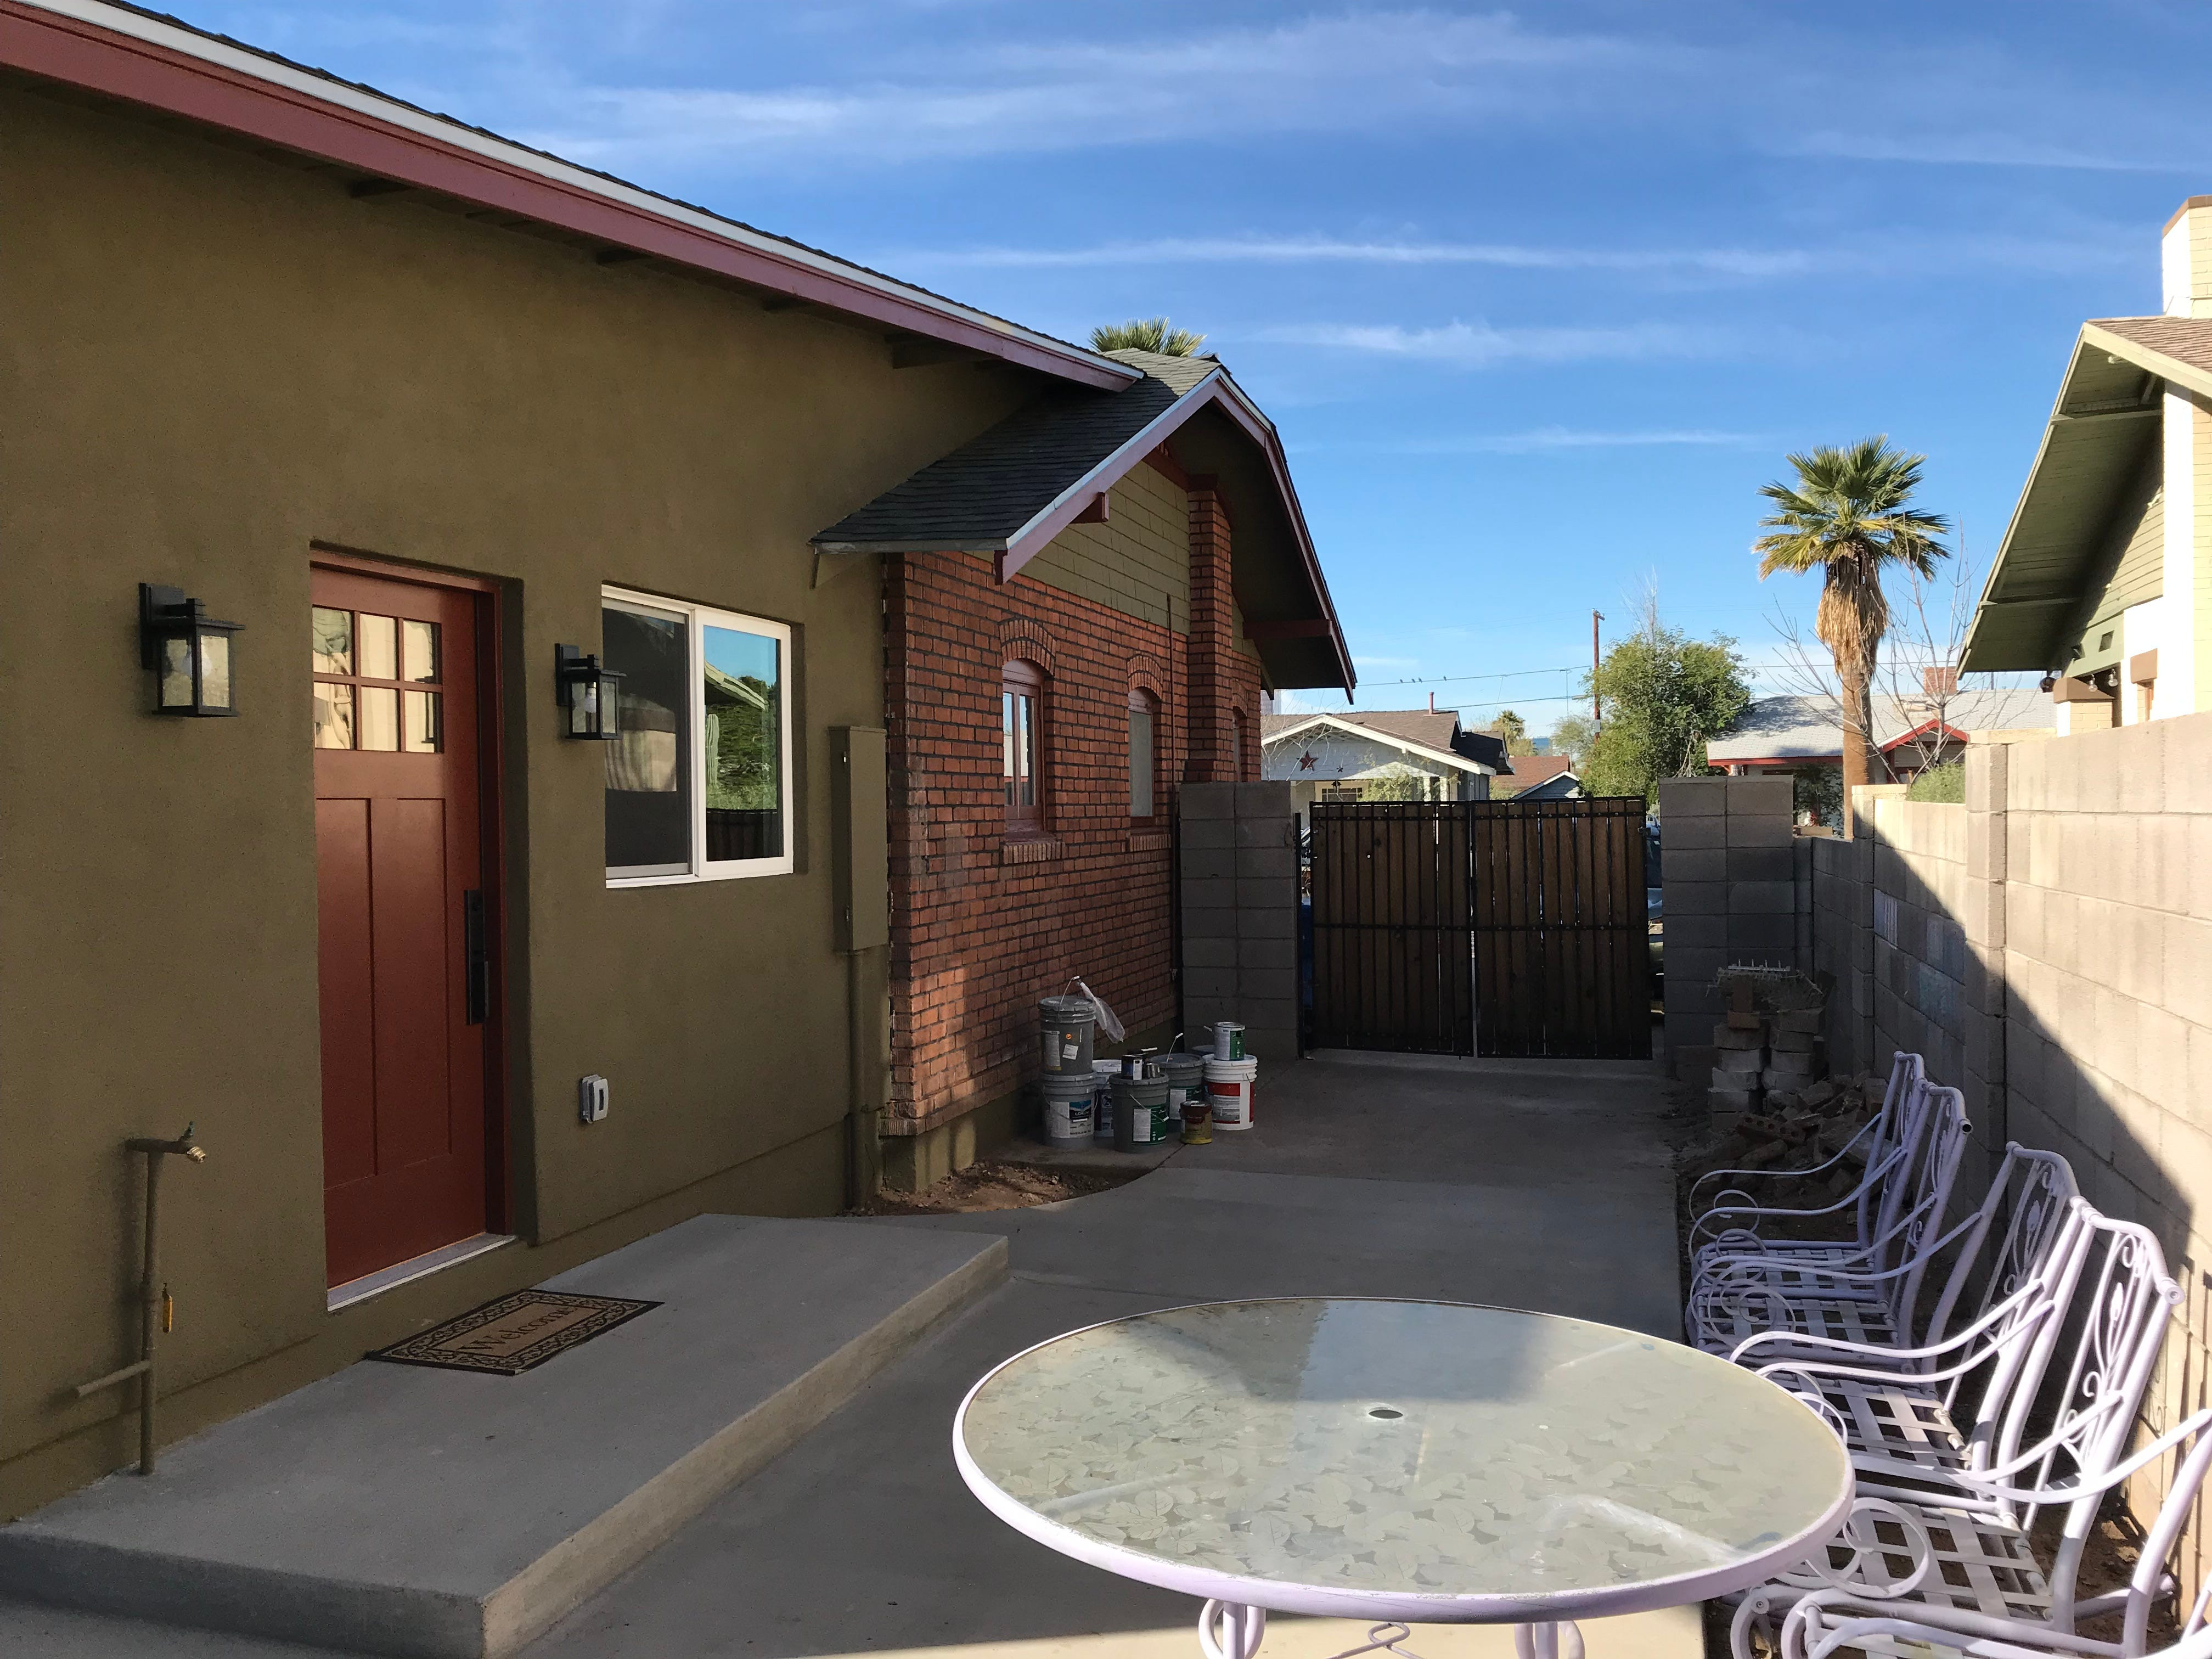 The kitchen door leads to a large patio area for outdoor living.